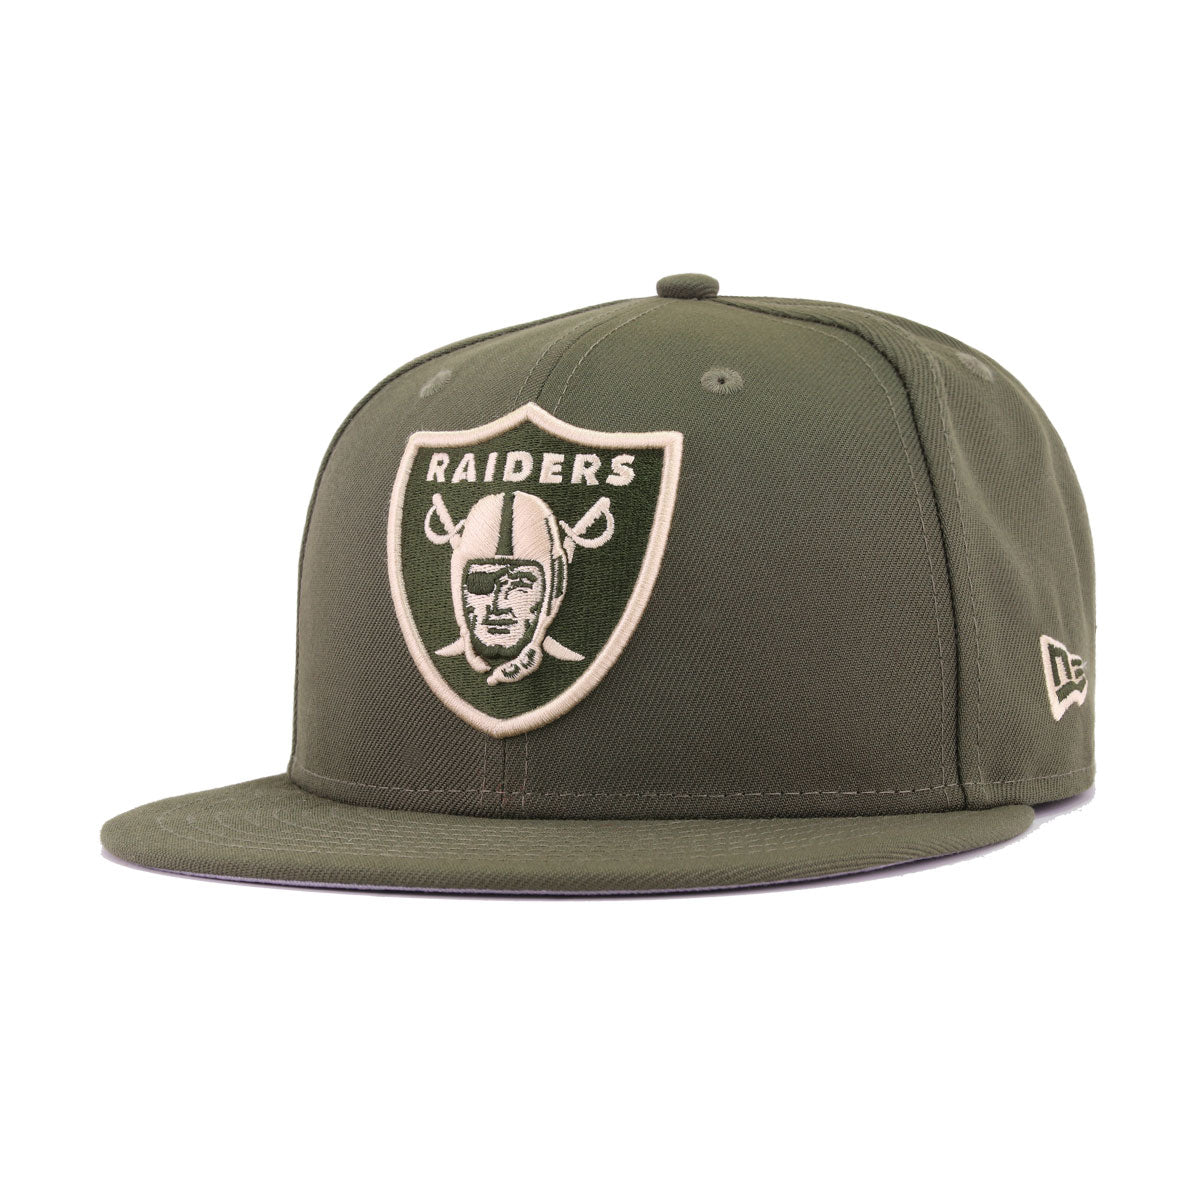 Las Vegas Raiders New Olive New Era 9Fifty Snapback